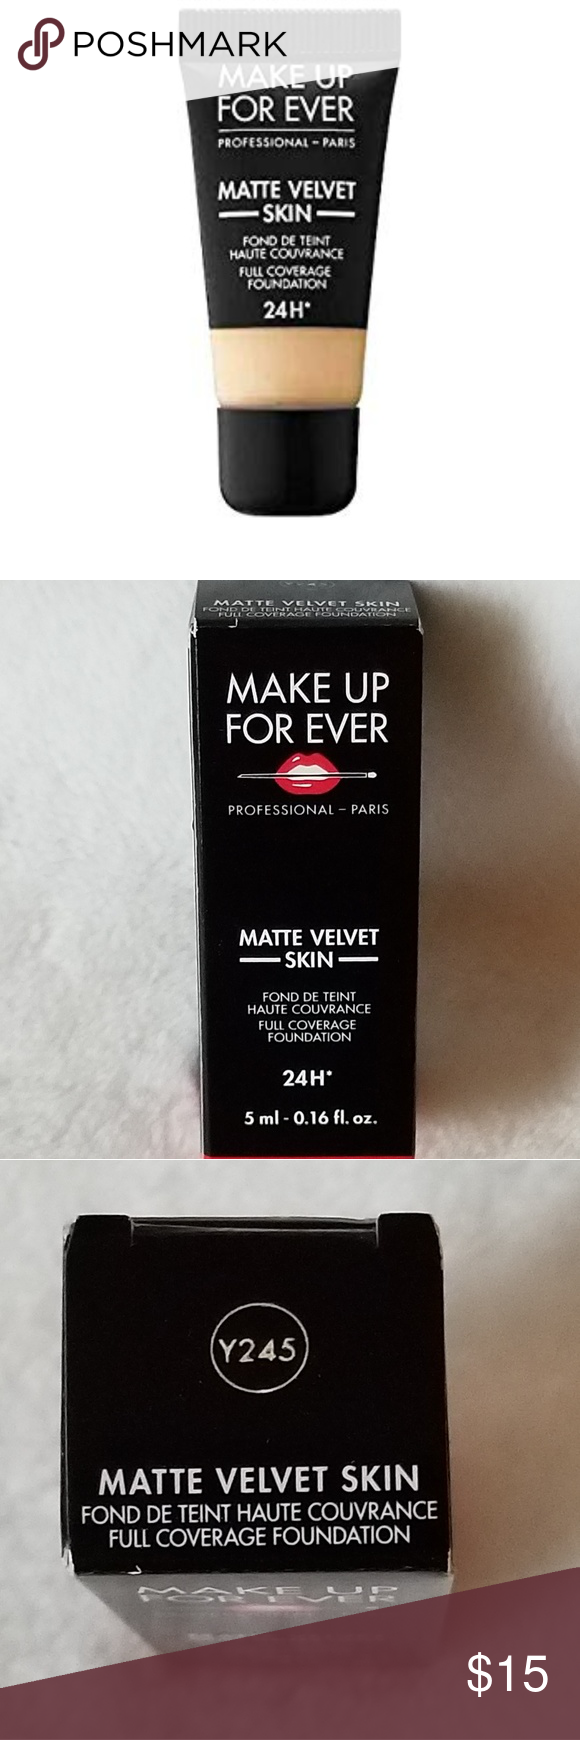 NIB MAKEUP FOREVER MATTE VELVET SKIN FOUNDATION TO